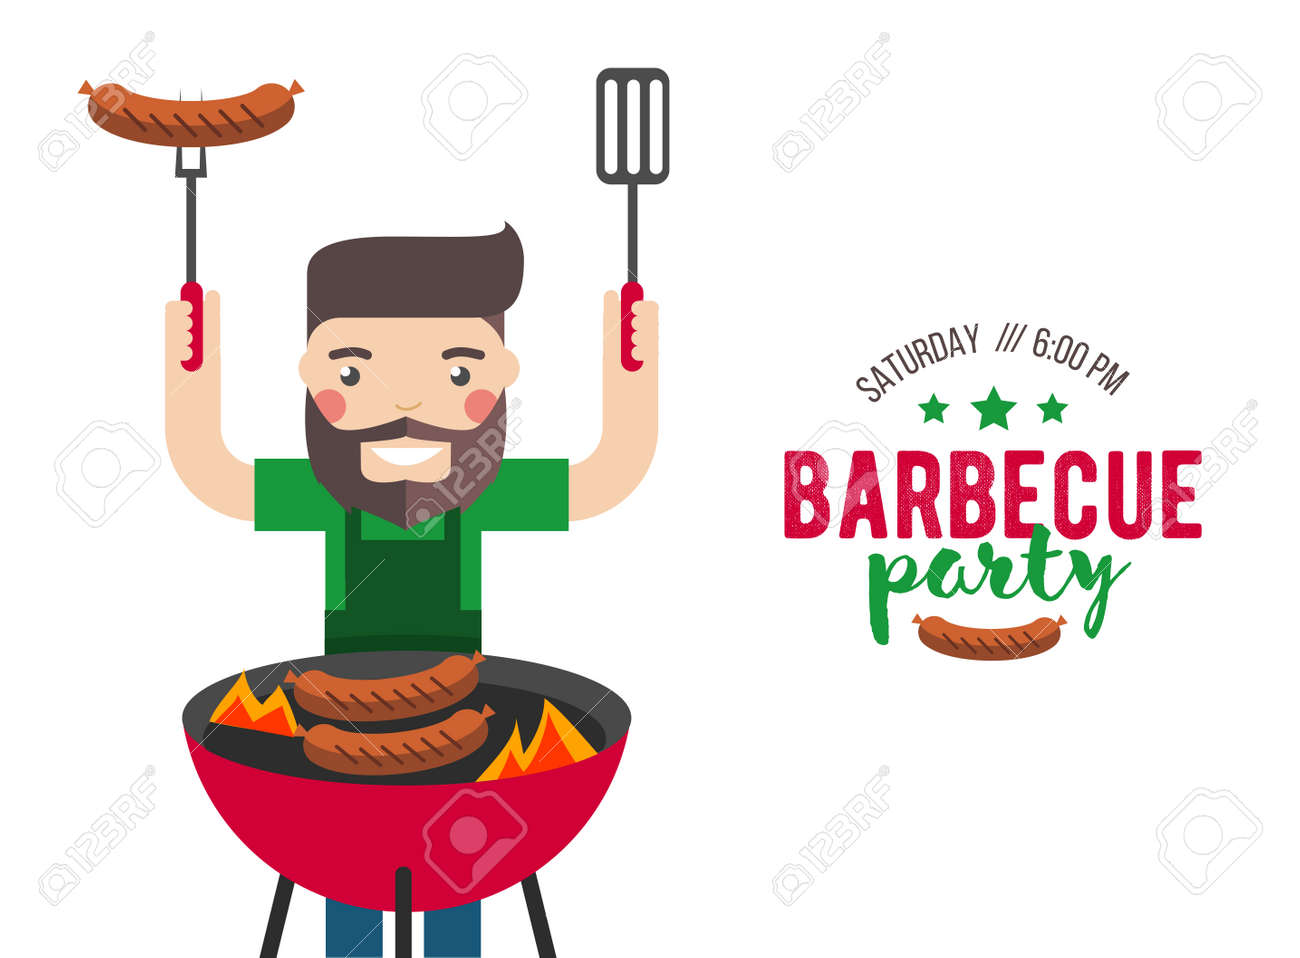 barbecue party cartoon people for flyer or invite card royalty free